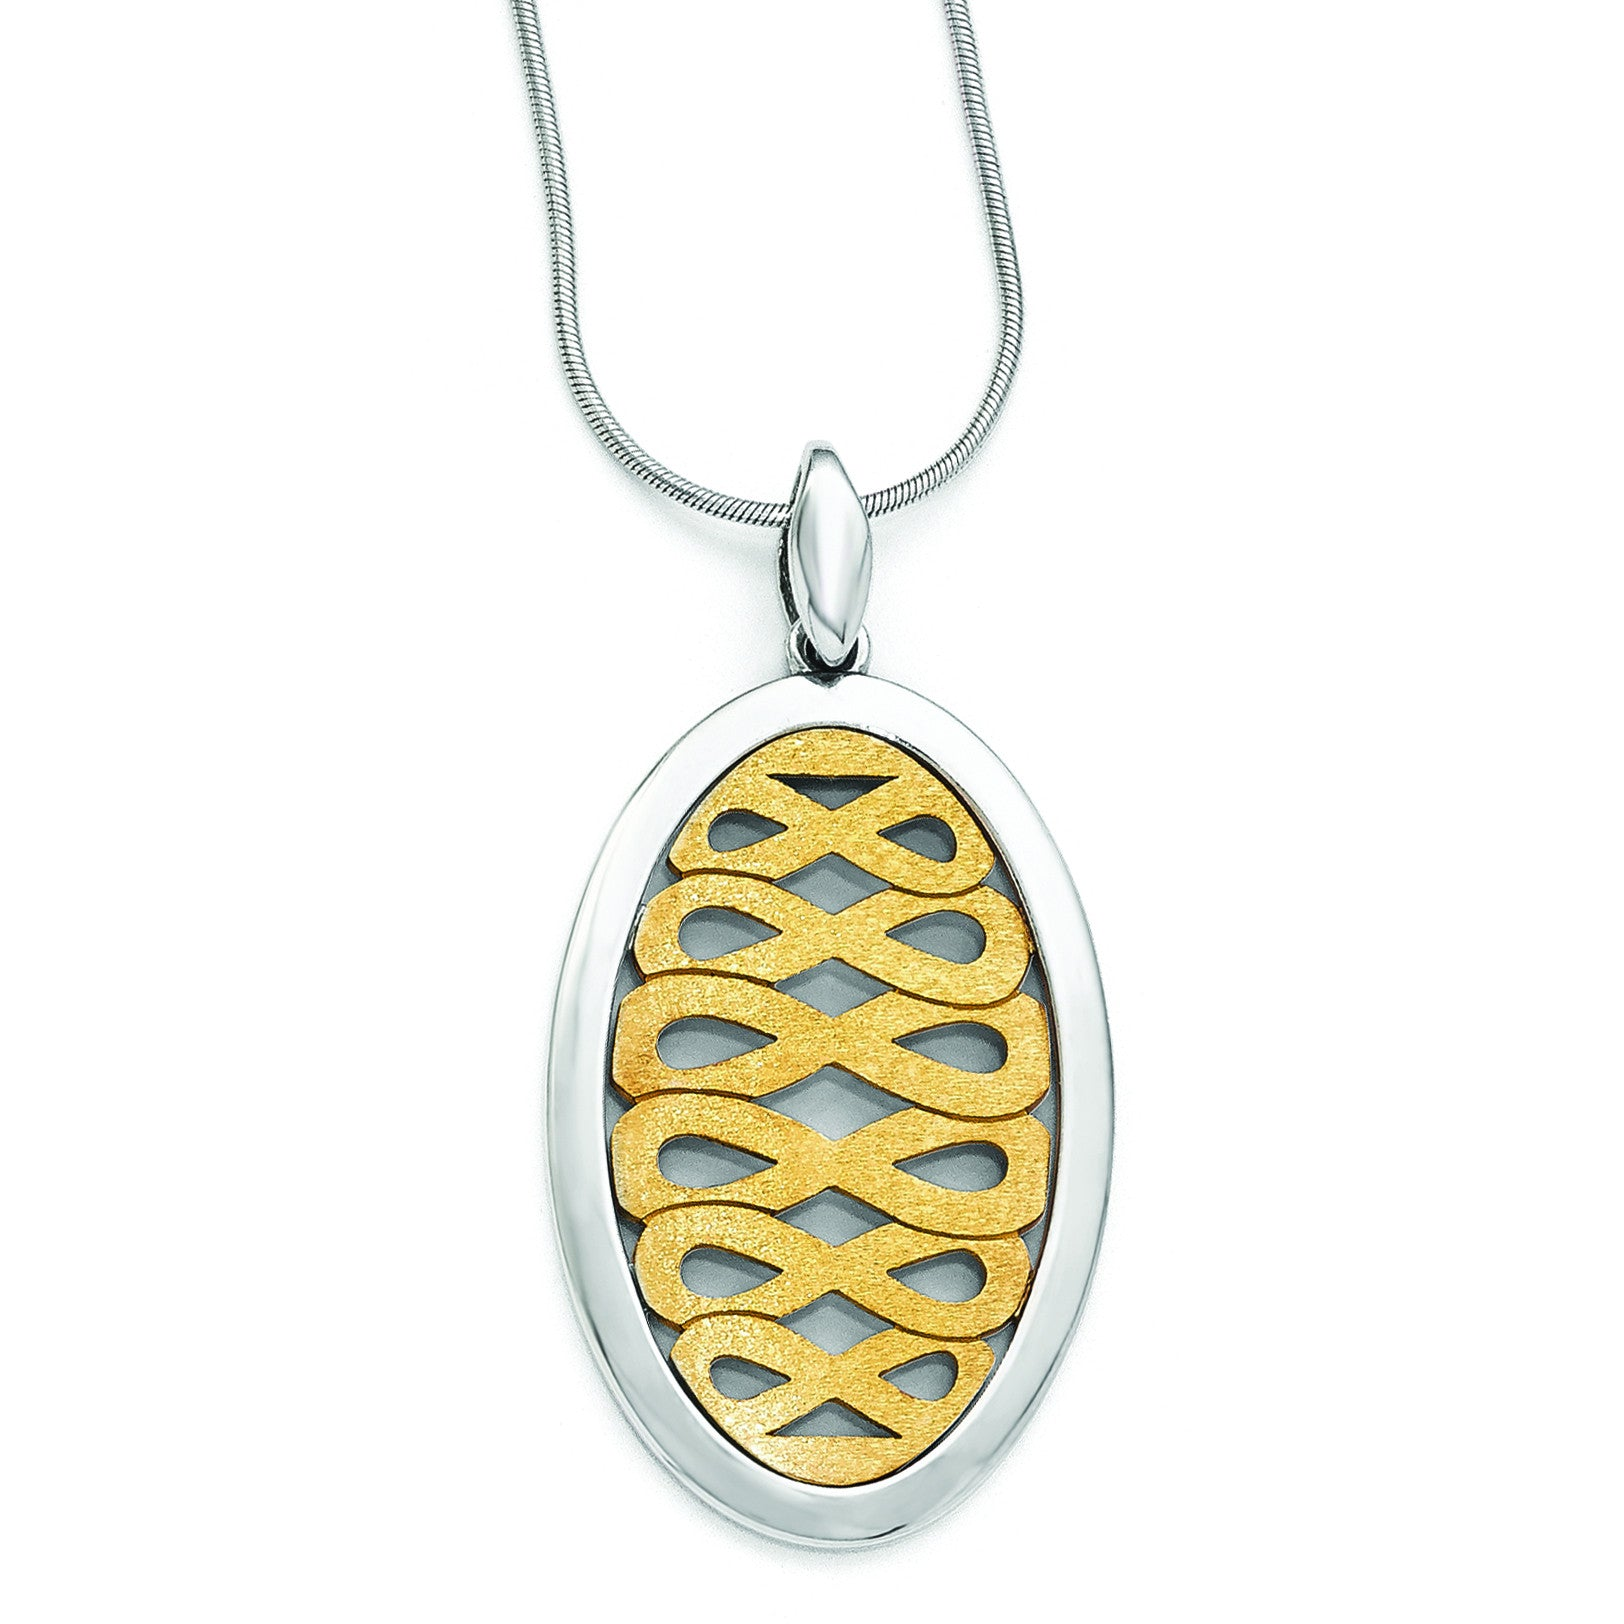 Leslie's Sterling Silver Gold-tone Flash 24k Plated Pendant QLF431 - shirin-diamonds